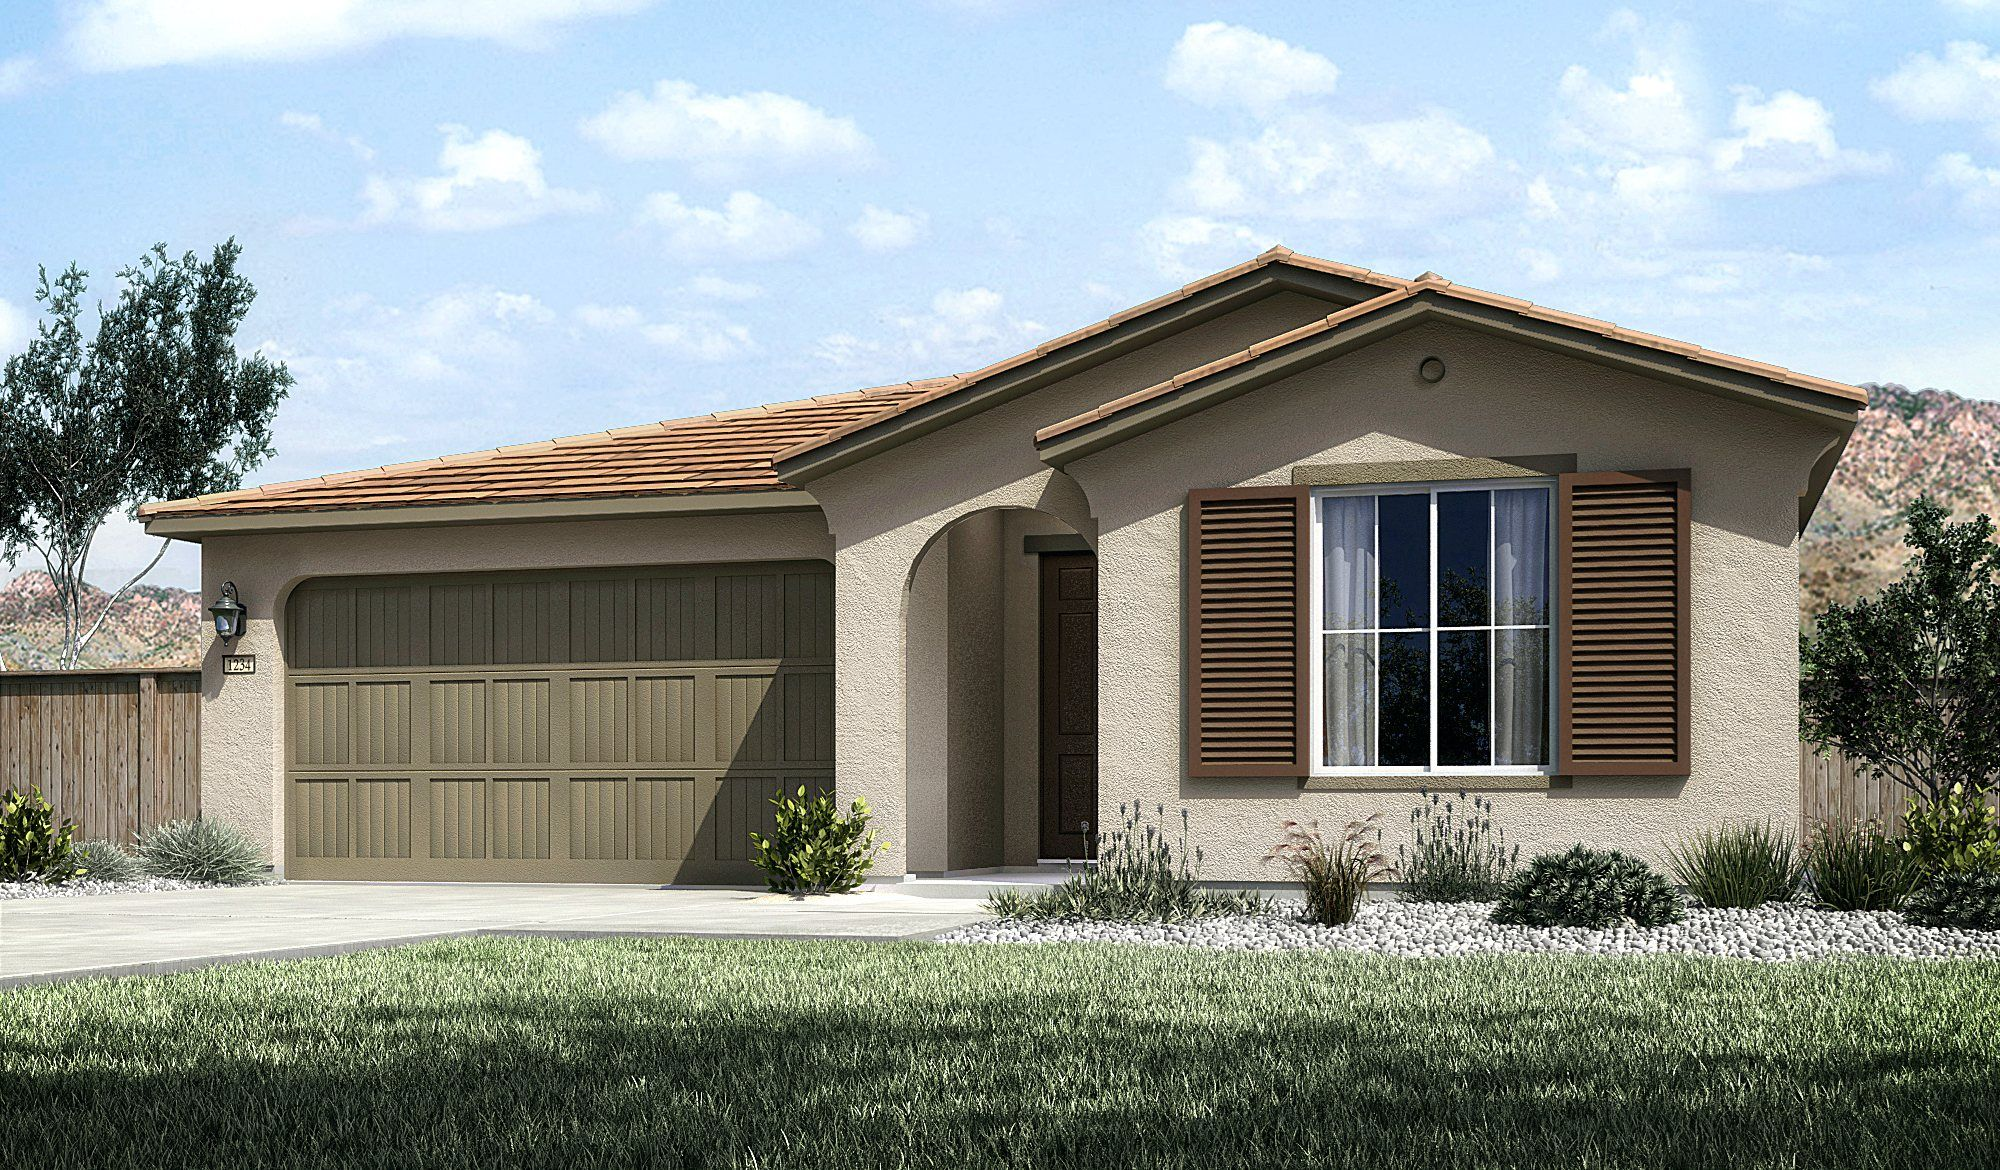 Single Family for Sale at Sage Meadow At Damonte Ranch - The Sandstone 10285 Rollins Drive Reno, Nevada 89521 United States